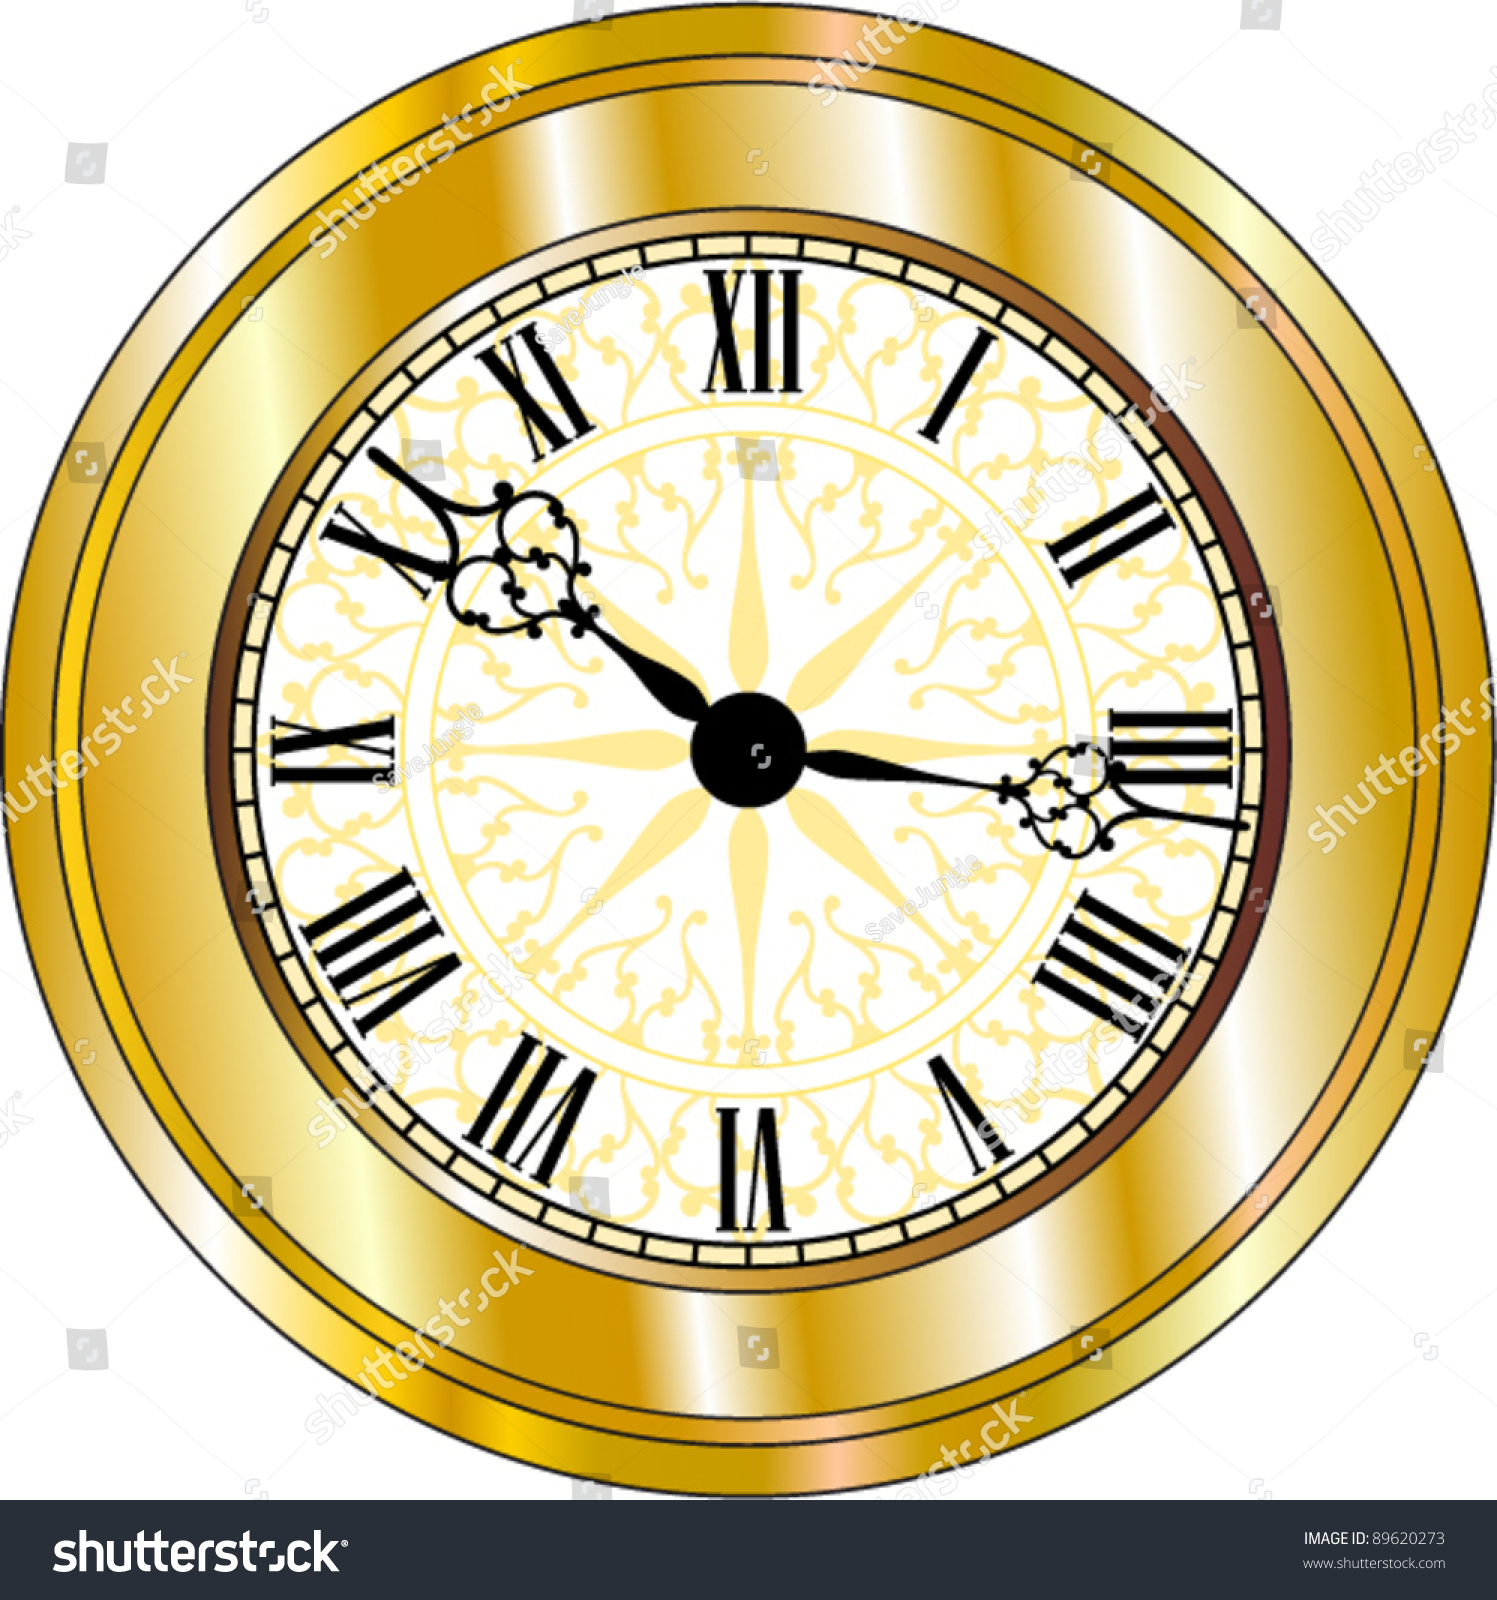 Vector Antique Looking Golden Clock Stock Vector 89620273 - Shutterstock